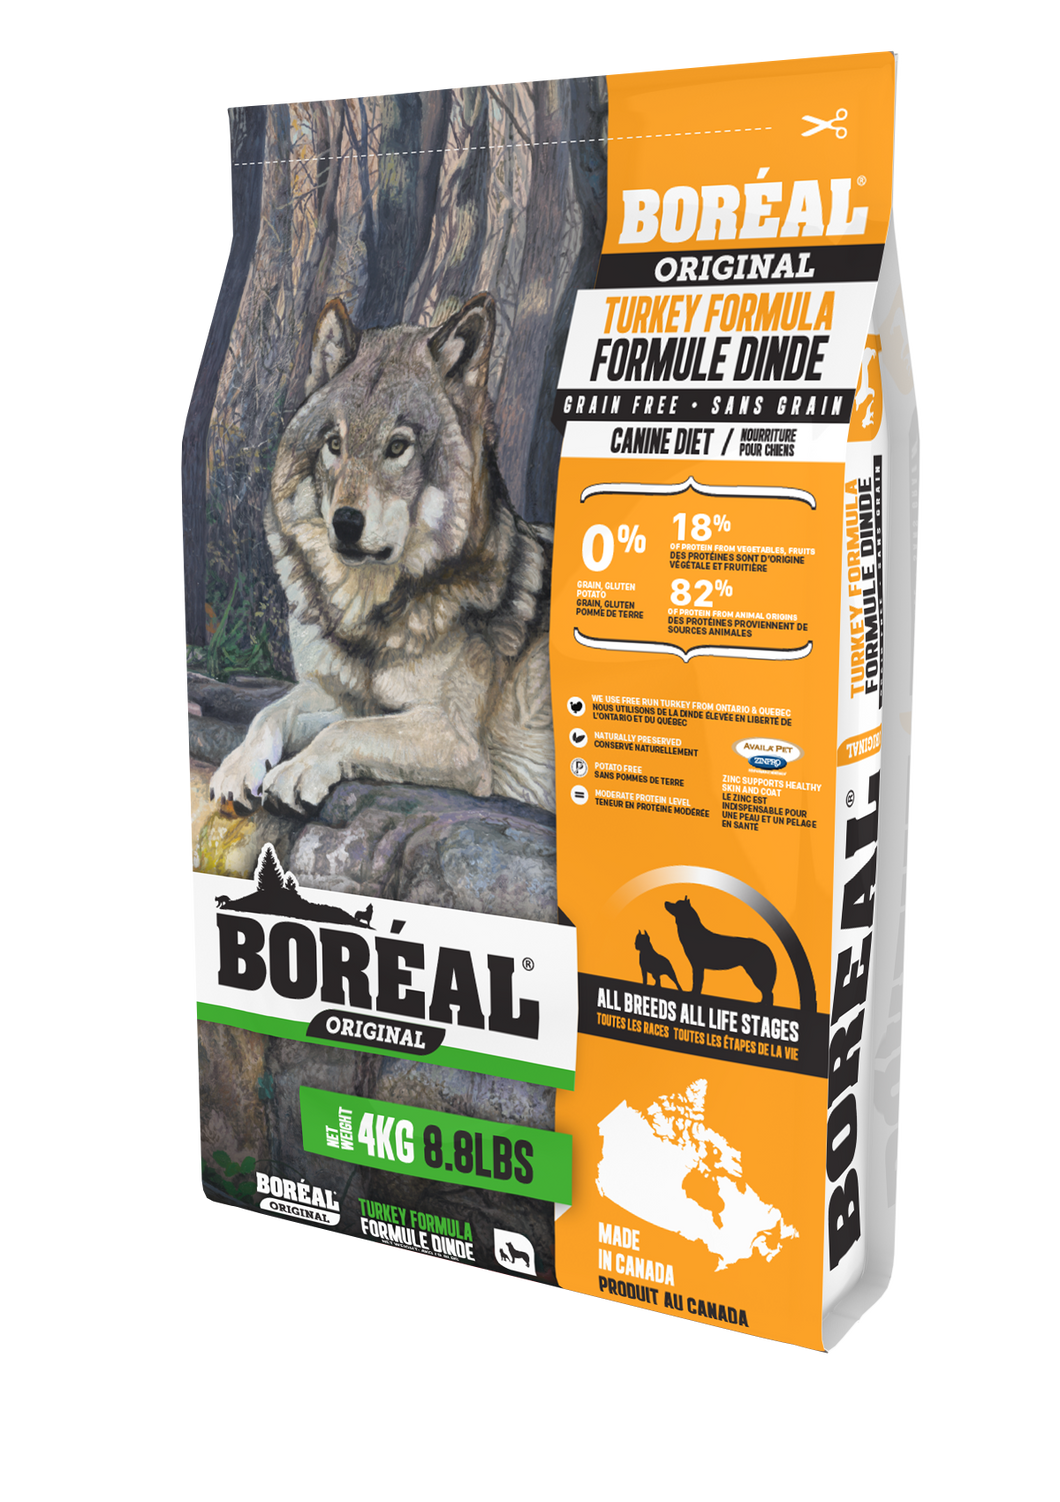 Boréal - Original Turkey Grain Free Dog Food - All Breed - Ontario & Quebec Free Run Chicken - Low Glycemic - Limited Ingredient - Naturally Preserved - Potato Free - Made in Canada